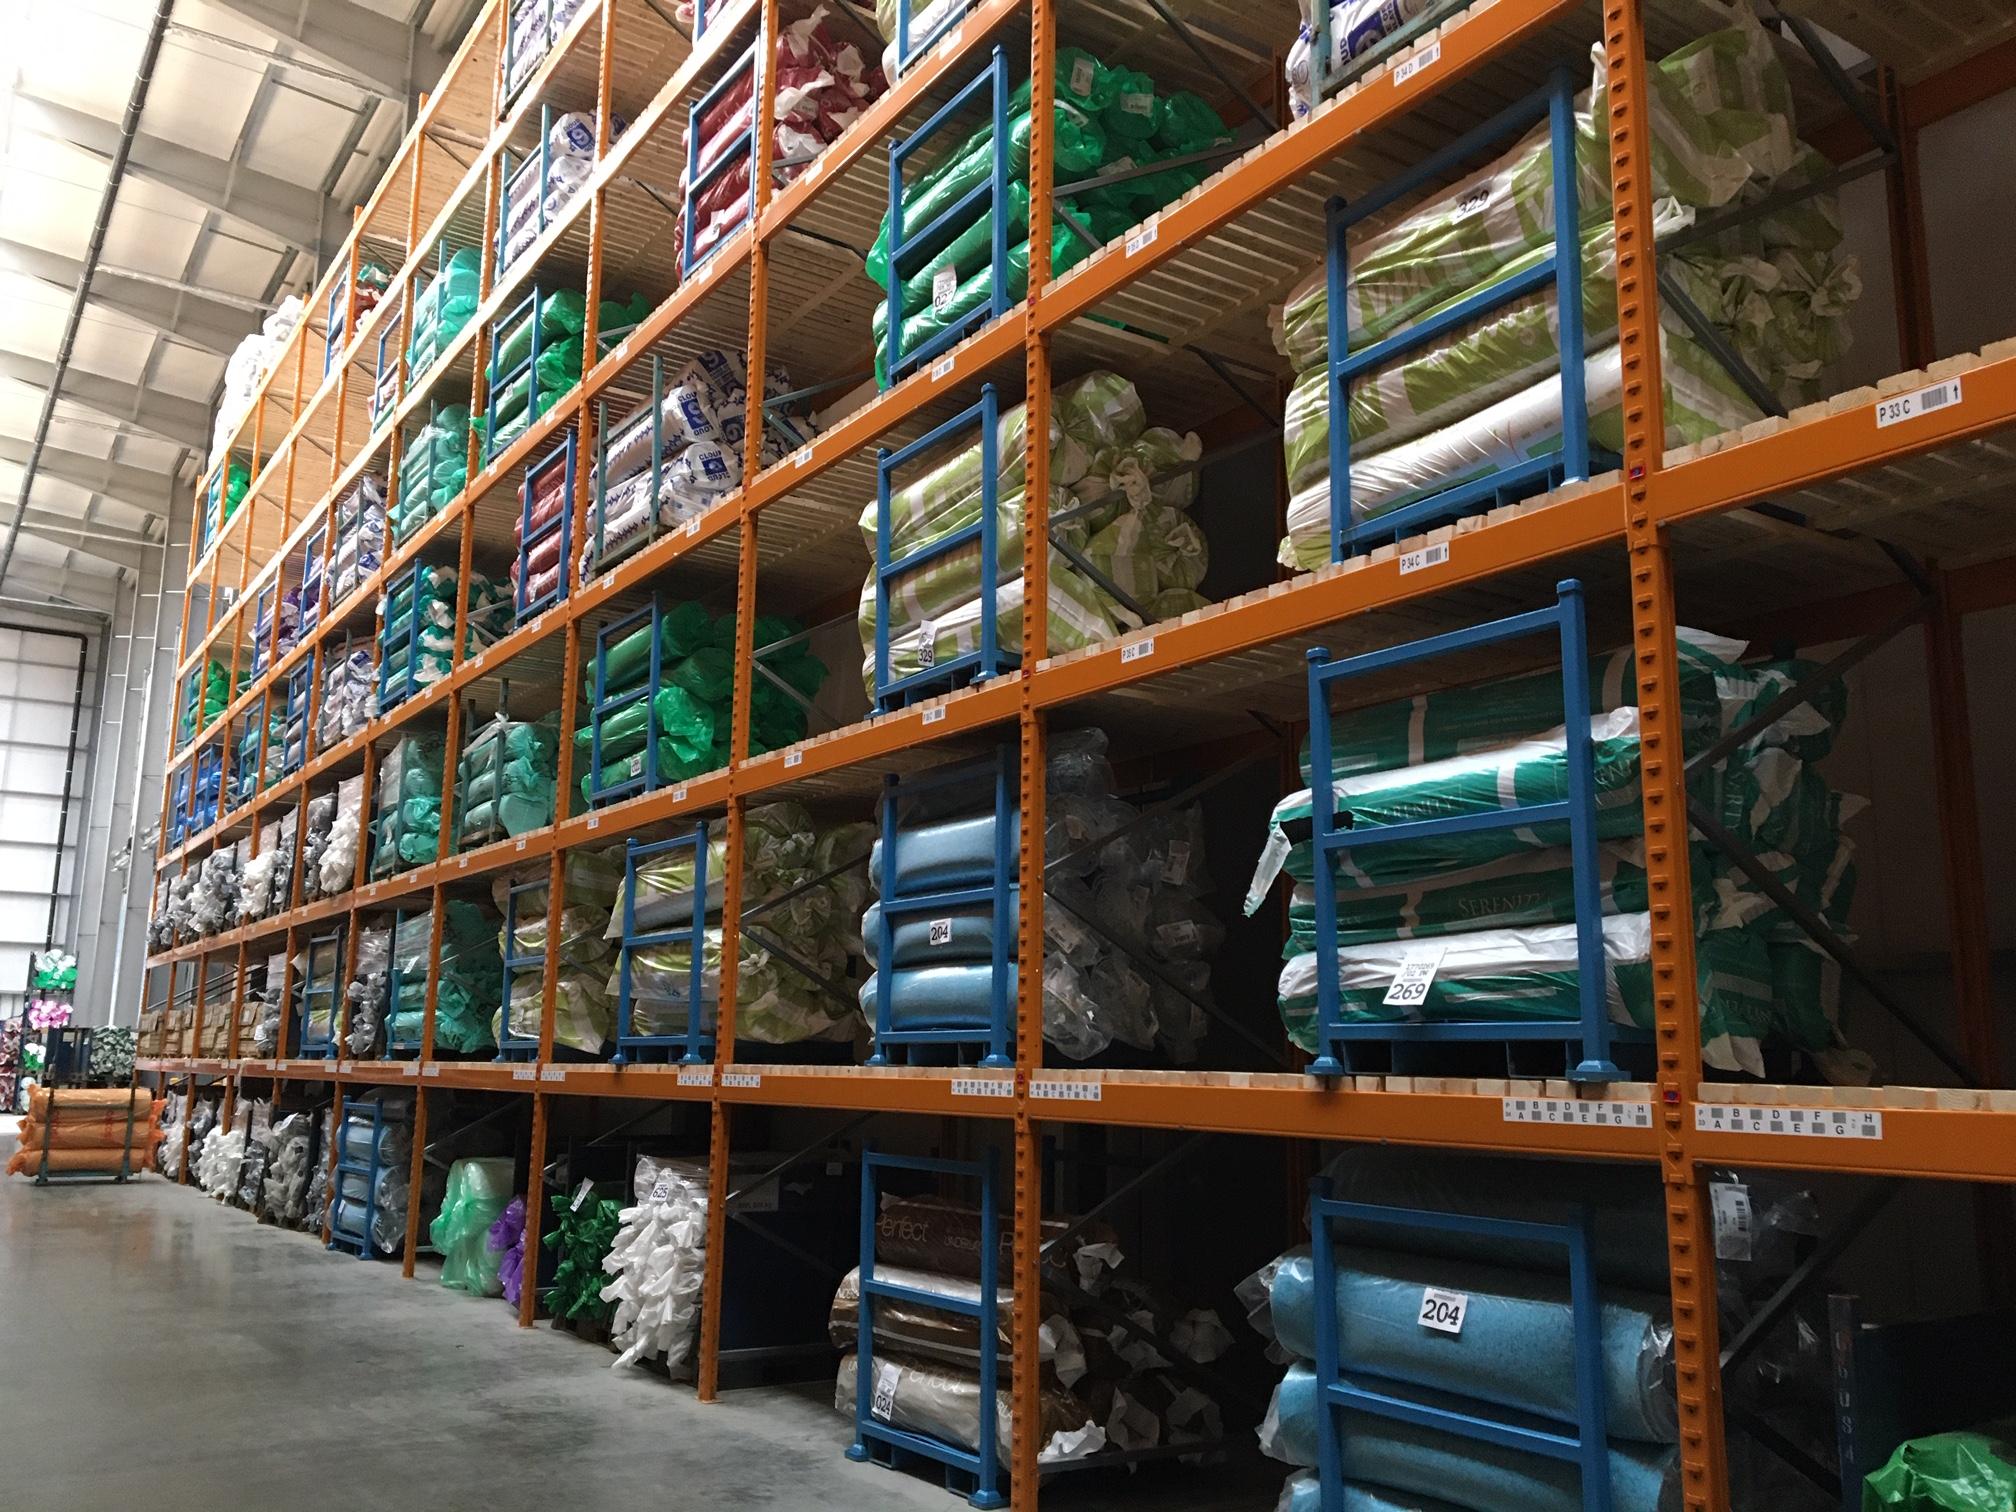 underlay-in-racking-1 (1).jpg